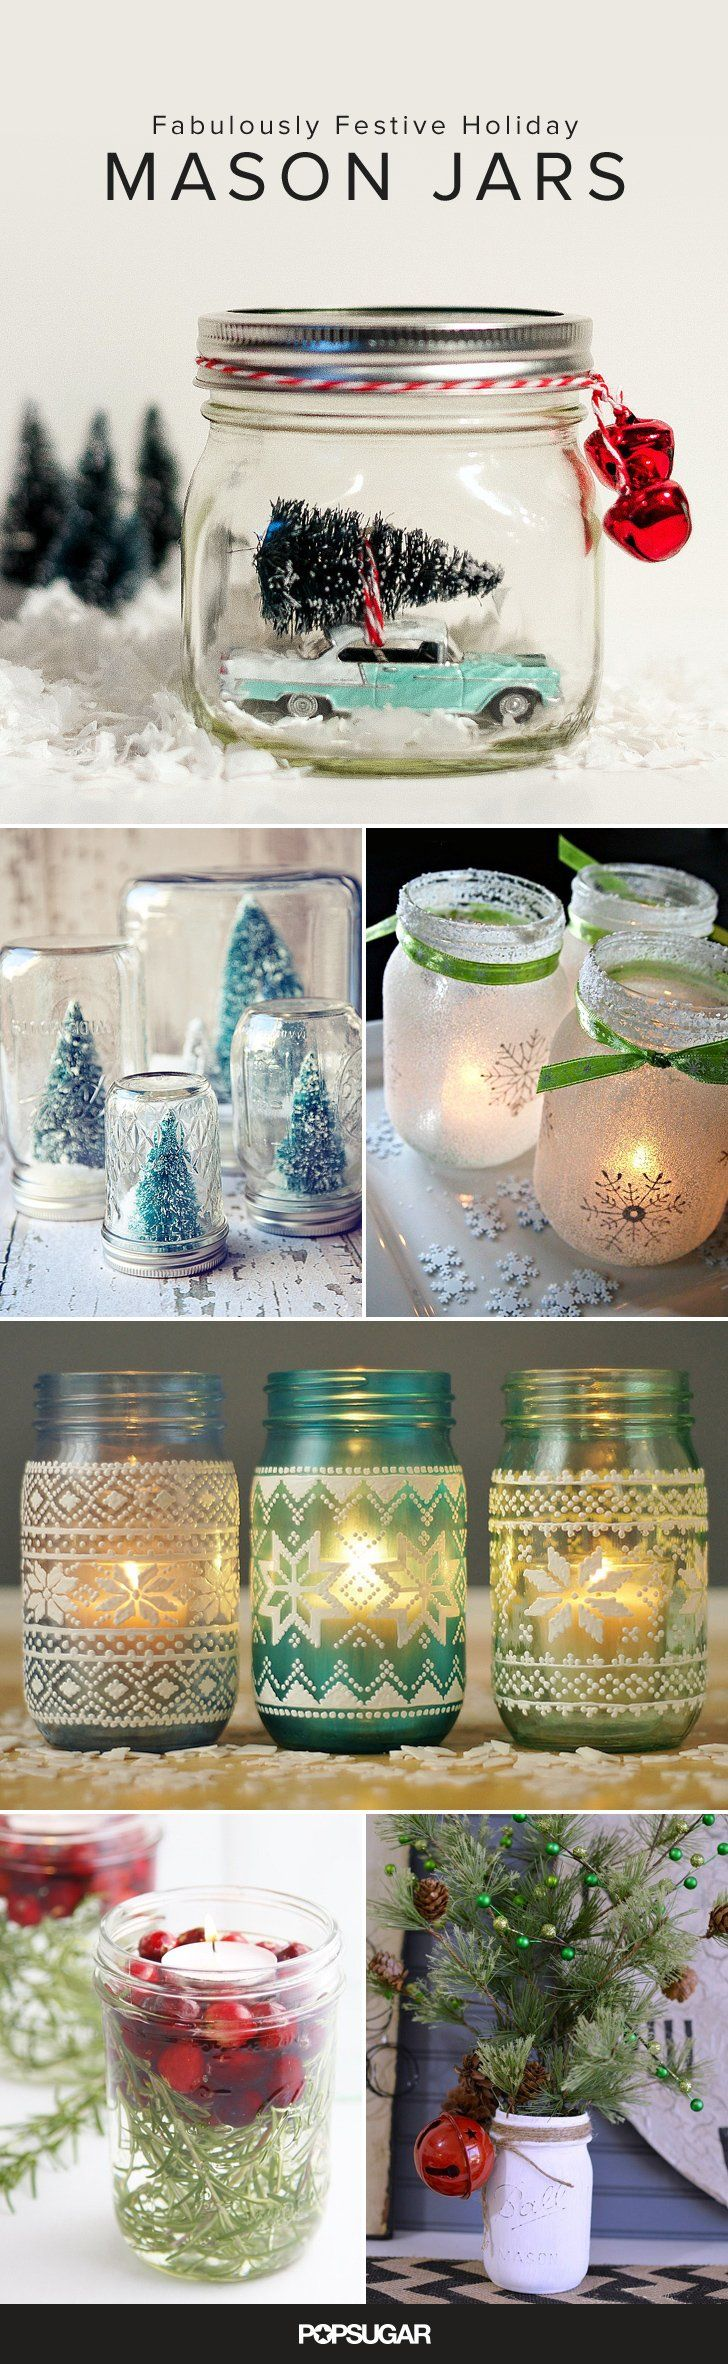 14 Creative Ways to Decorate With Mason Jars For the Holidays